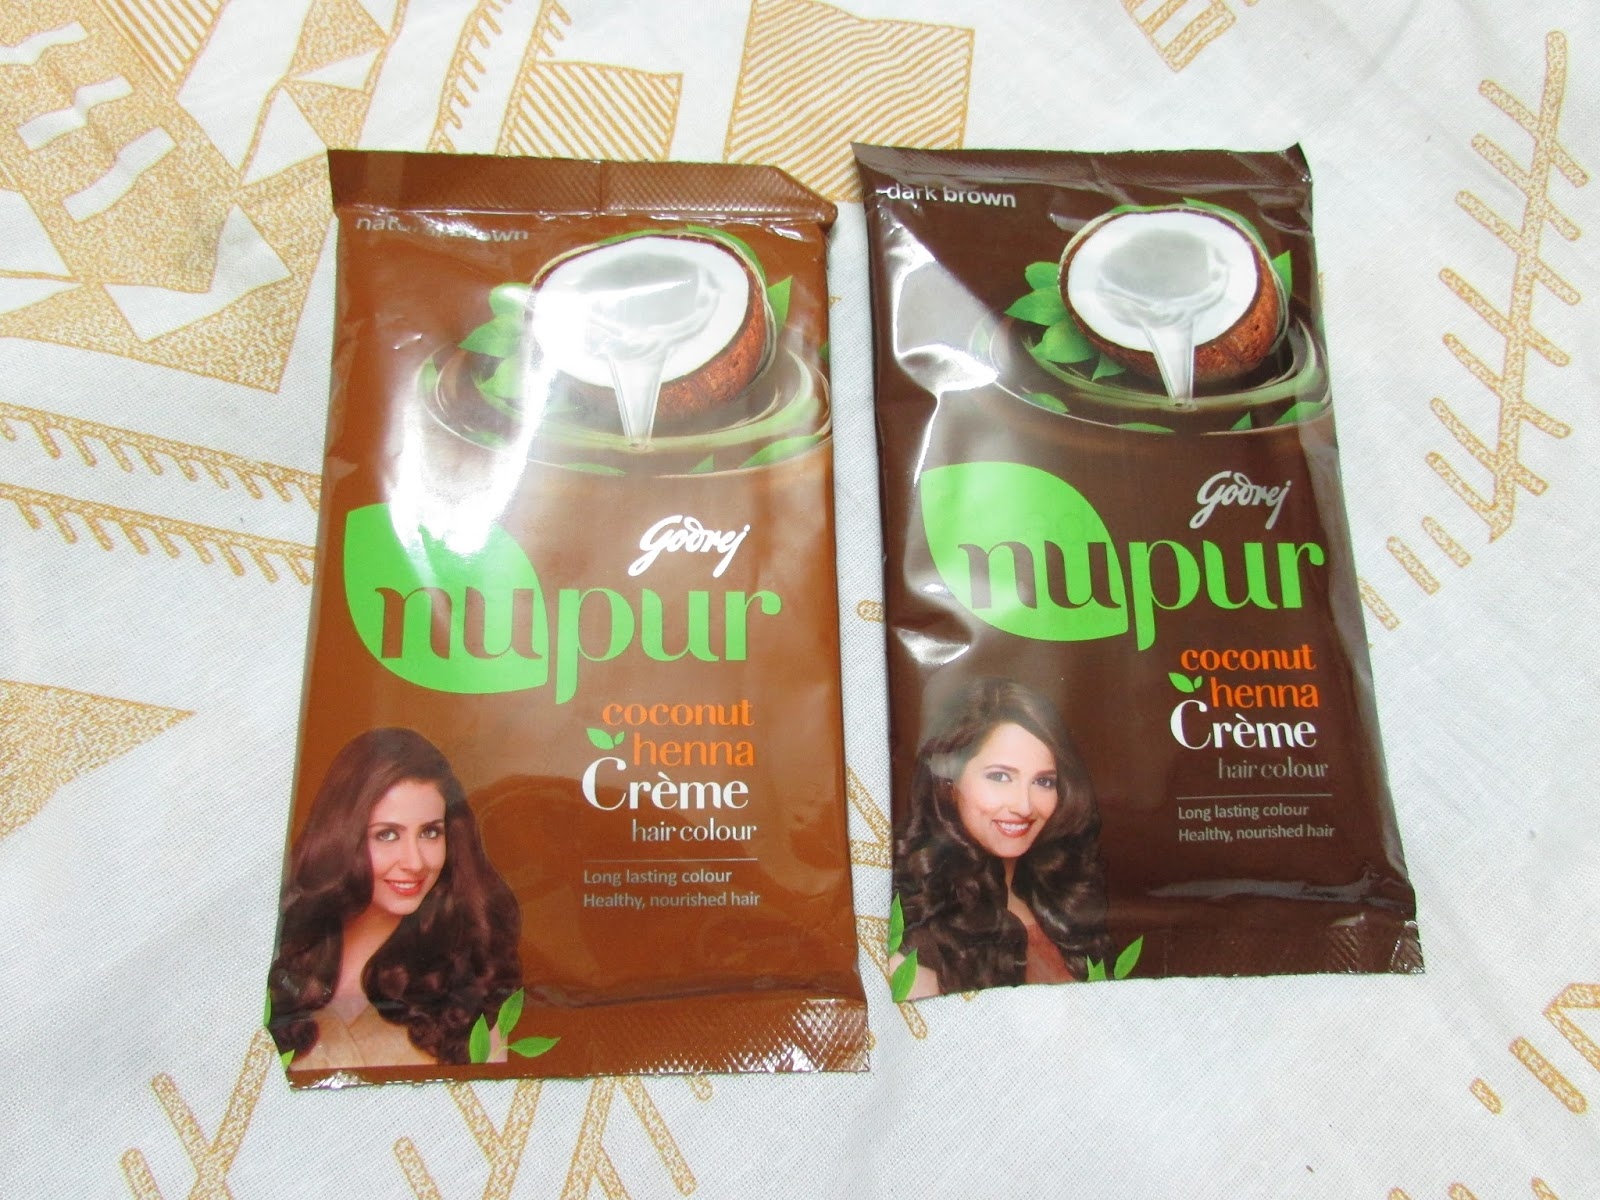 Godrej Nupur Coconut Henna Crme Hair Color Review